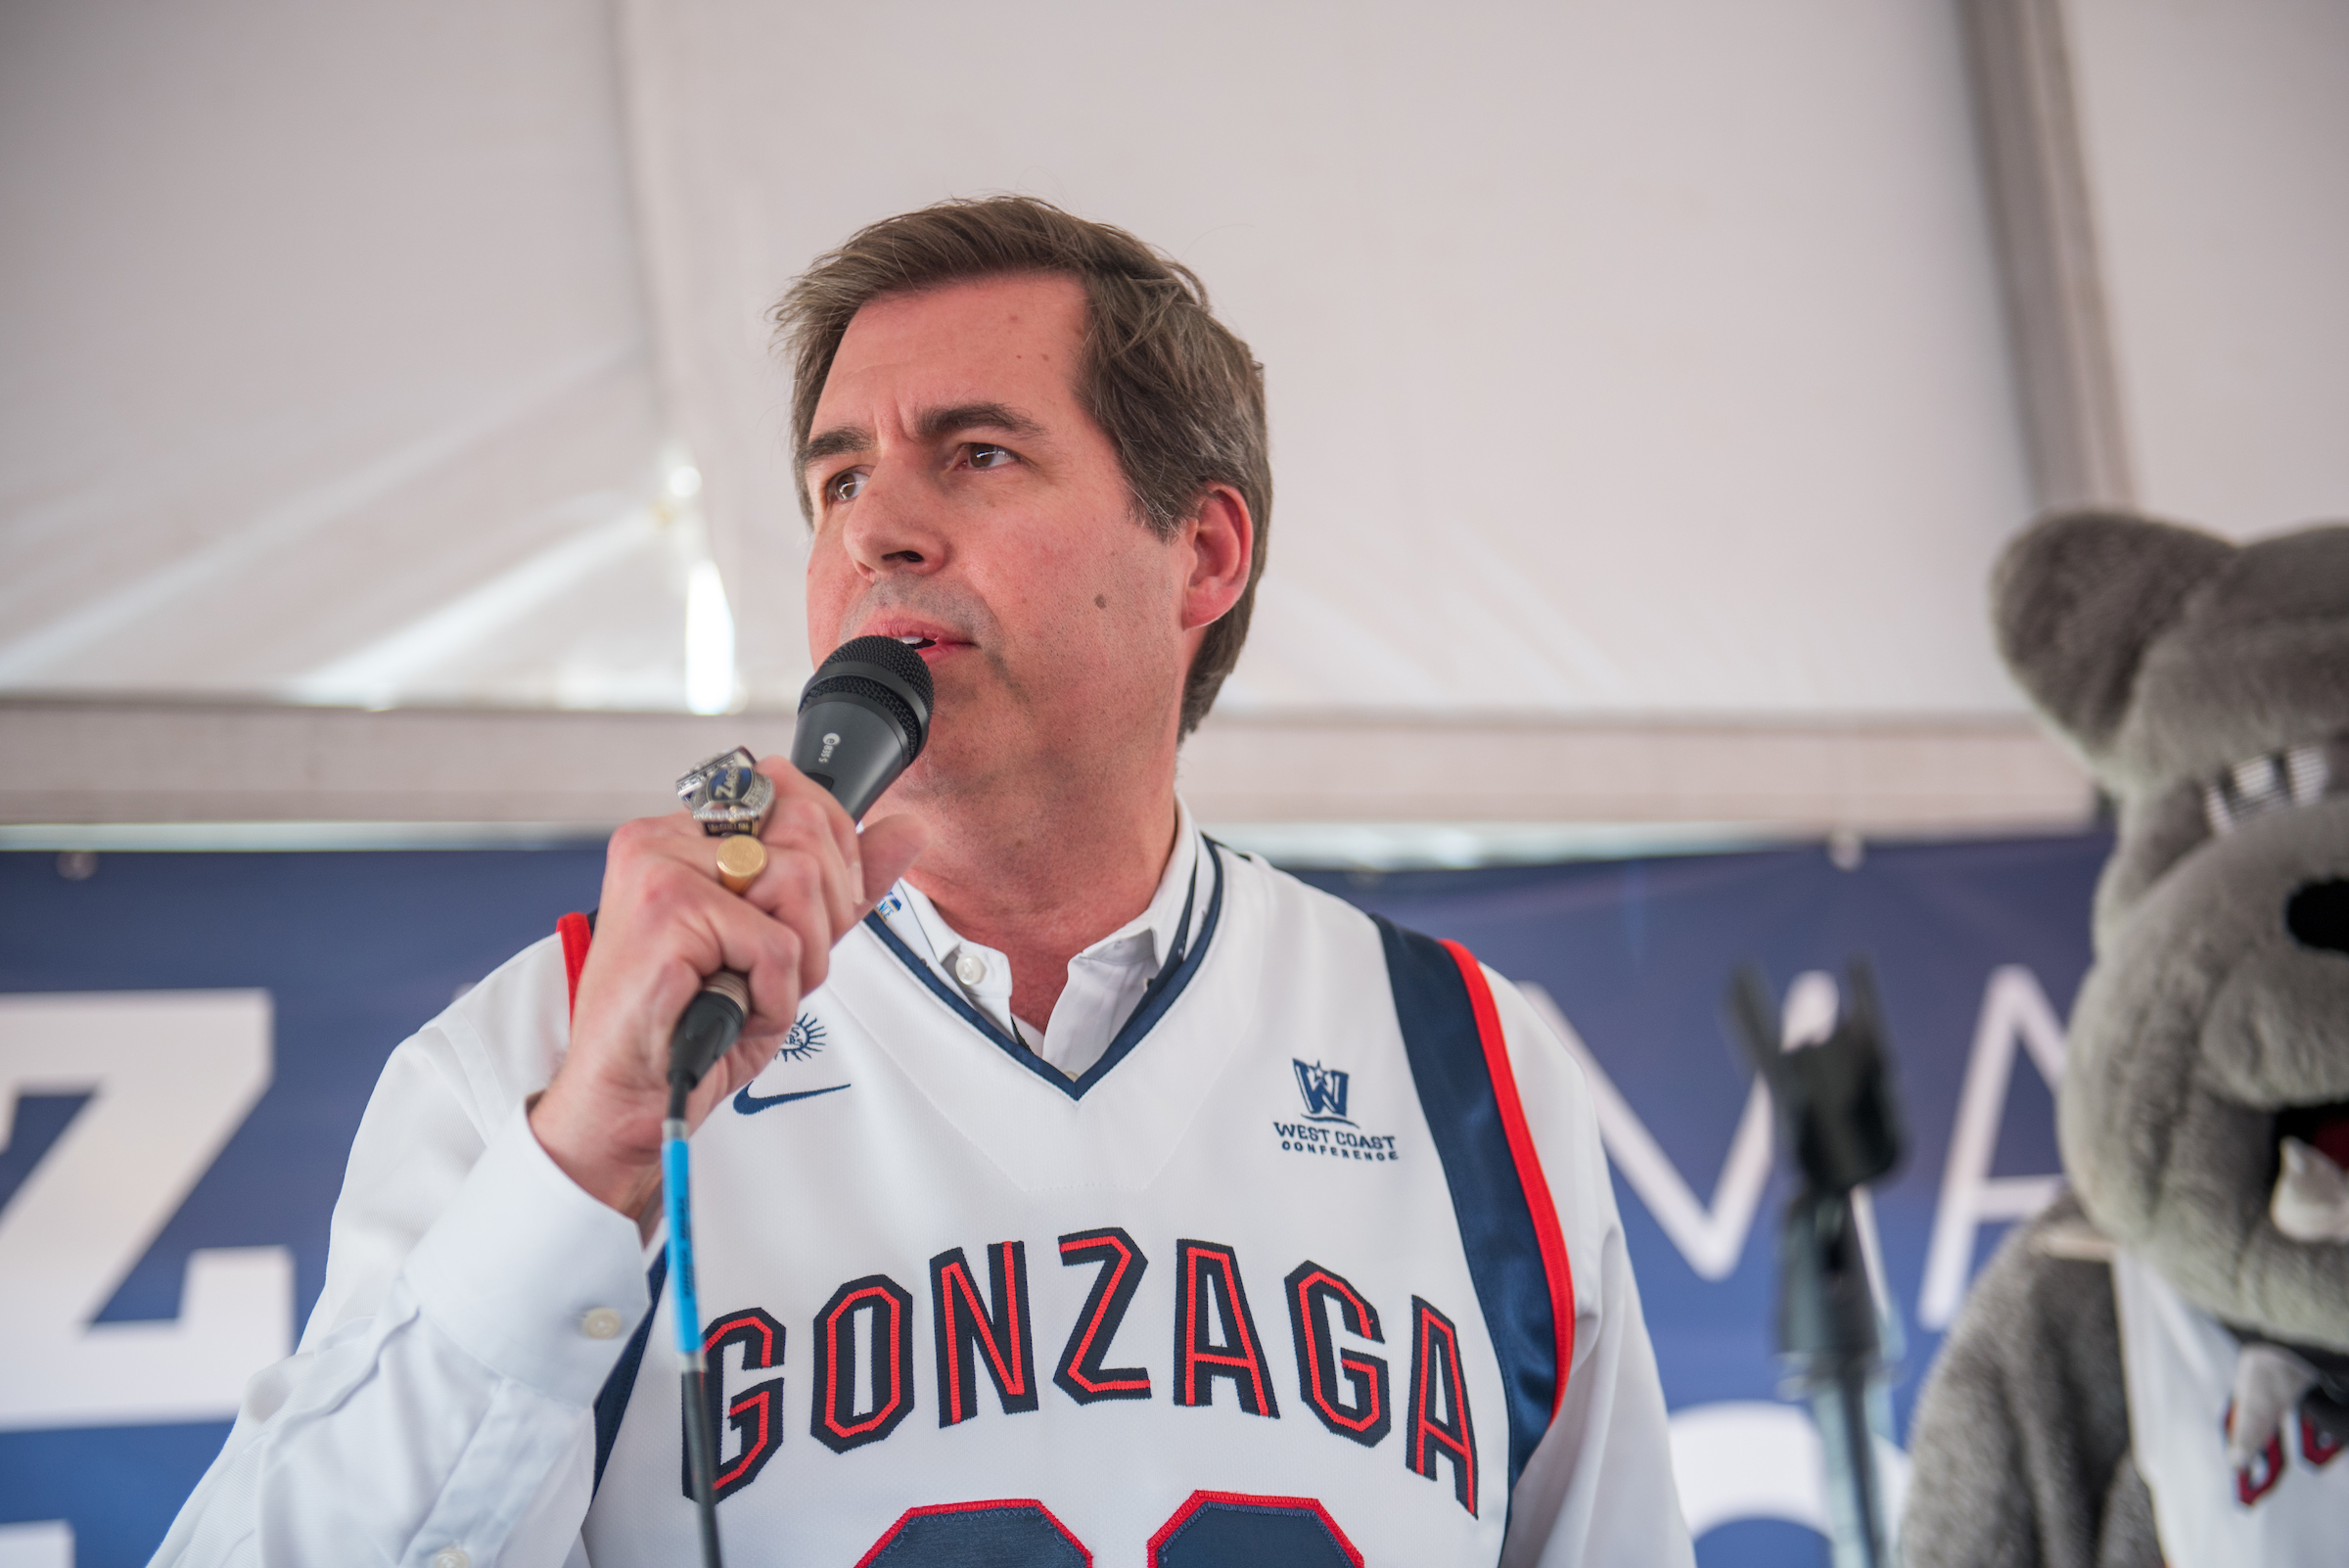 Gonzaga's president, Dr. Thayne McCulloh, actively joined in donor events and pep rallies, engaging with the University community throughout the tournament run (photo courtesy of Gonzaga University)